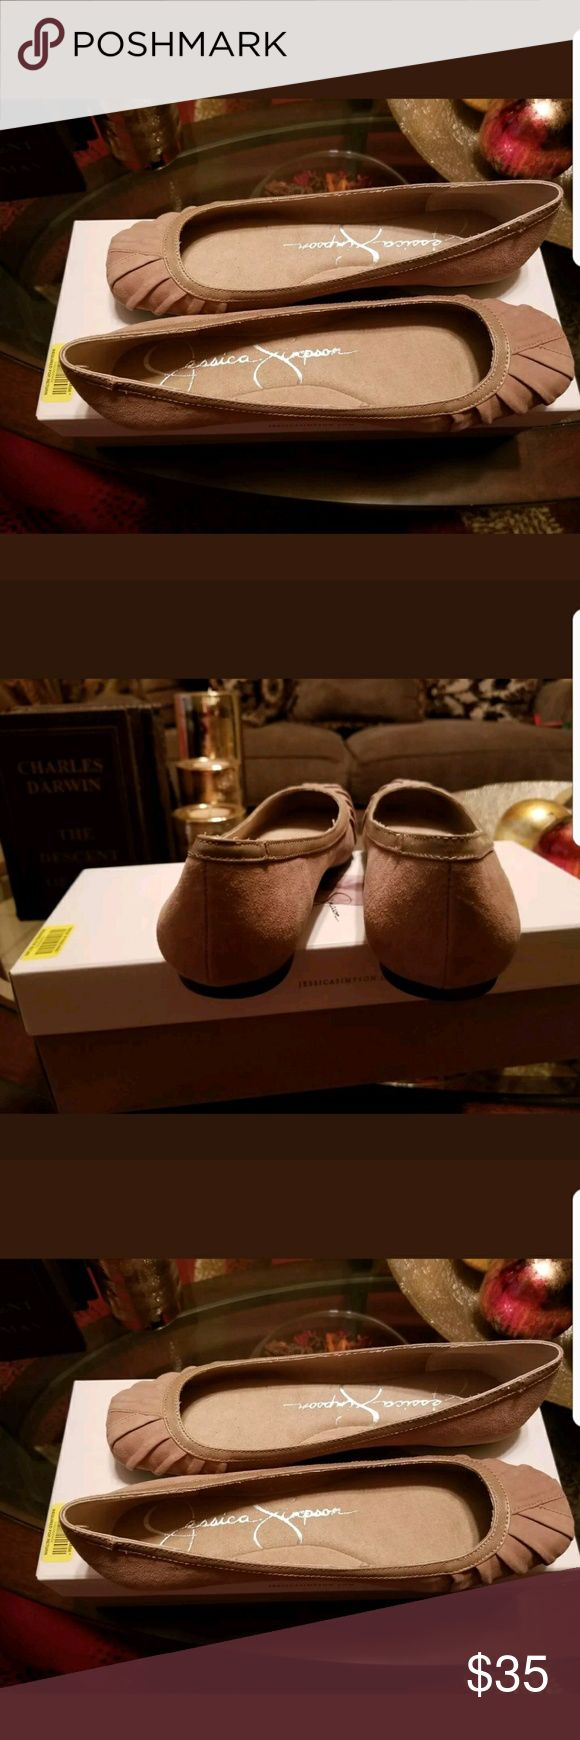 Jessica Simpson size 7 Tan Flats NWOT Jessica Simpson size 7 Tan Flats up 4 grab. Soft suede, very comfortable. Jessica Simpson Shoes Flats & Loafers